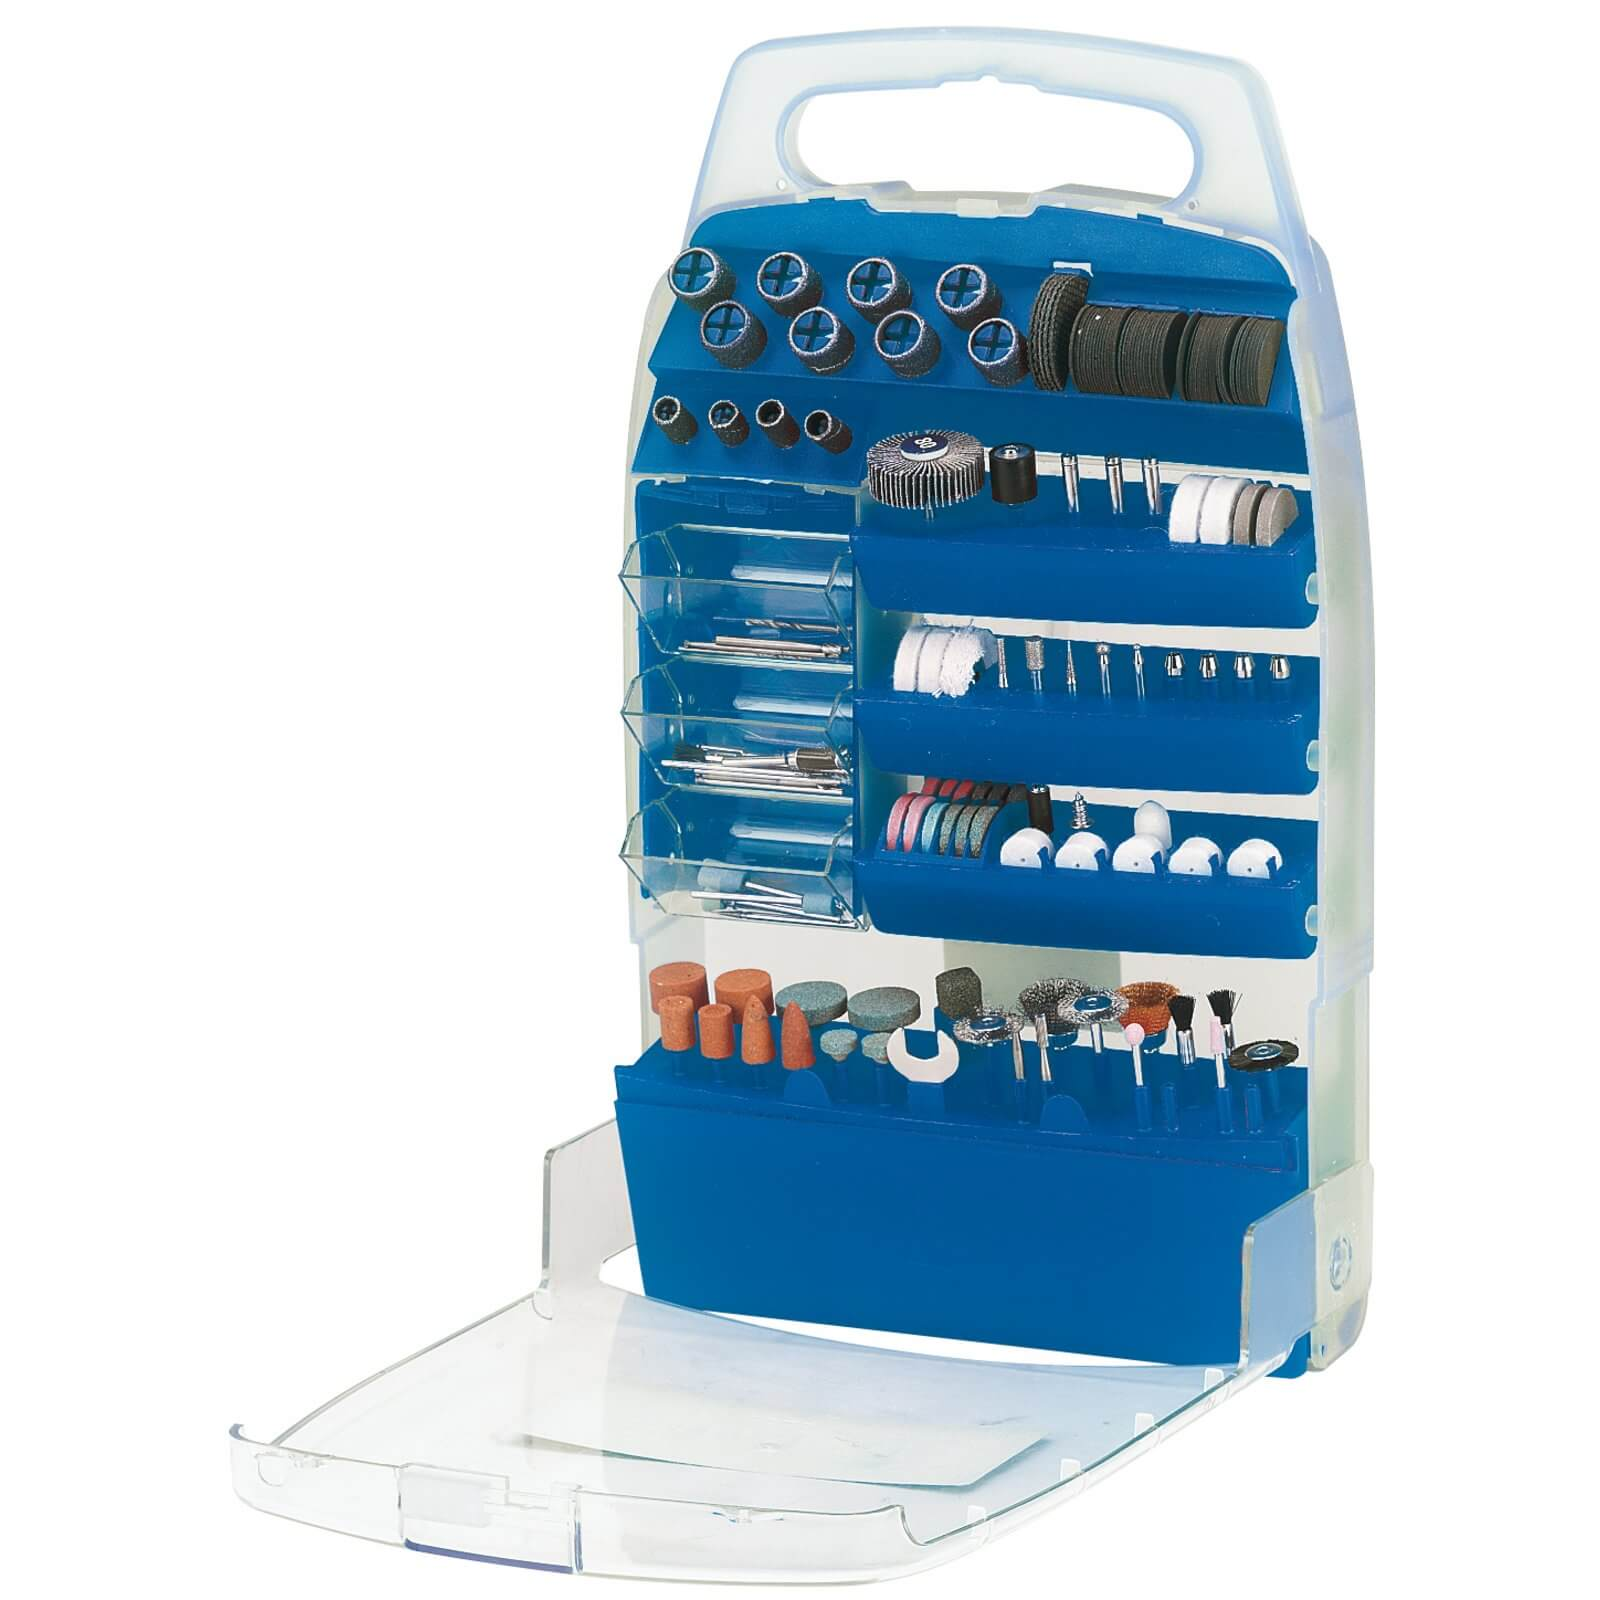 Image of Draper 200 Piece Rotary Multi Tool Accessory Kit